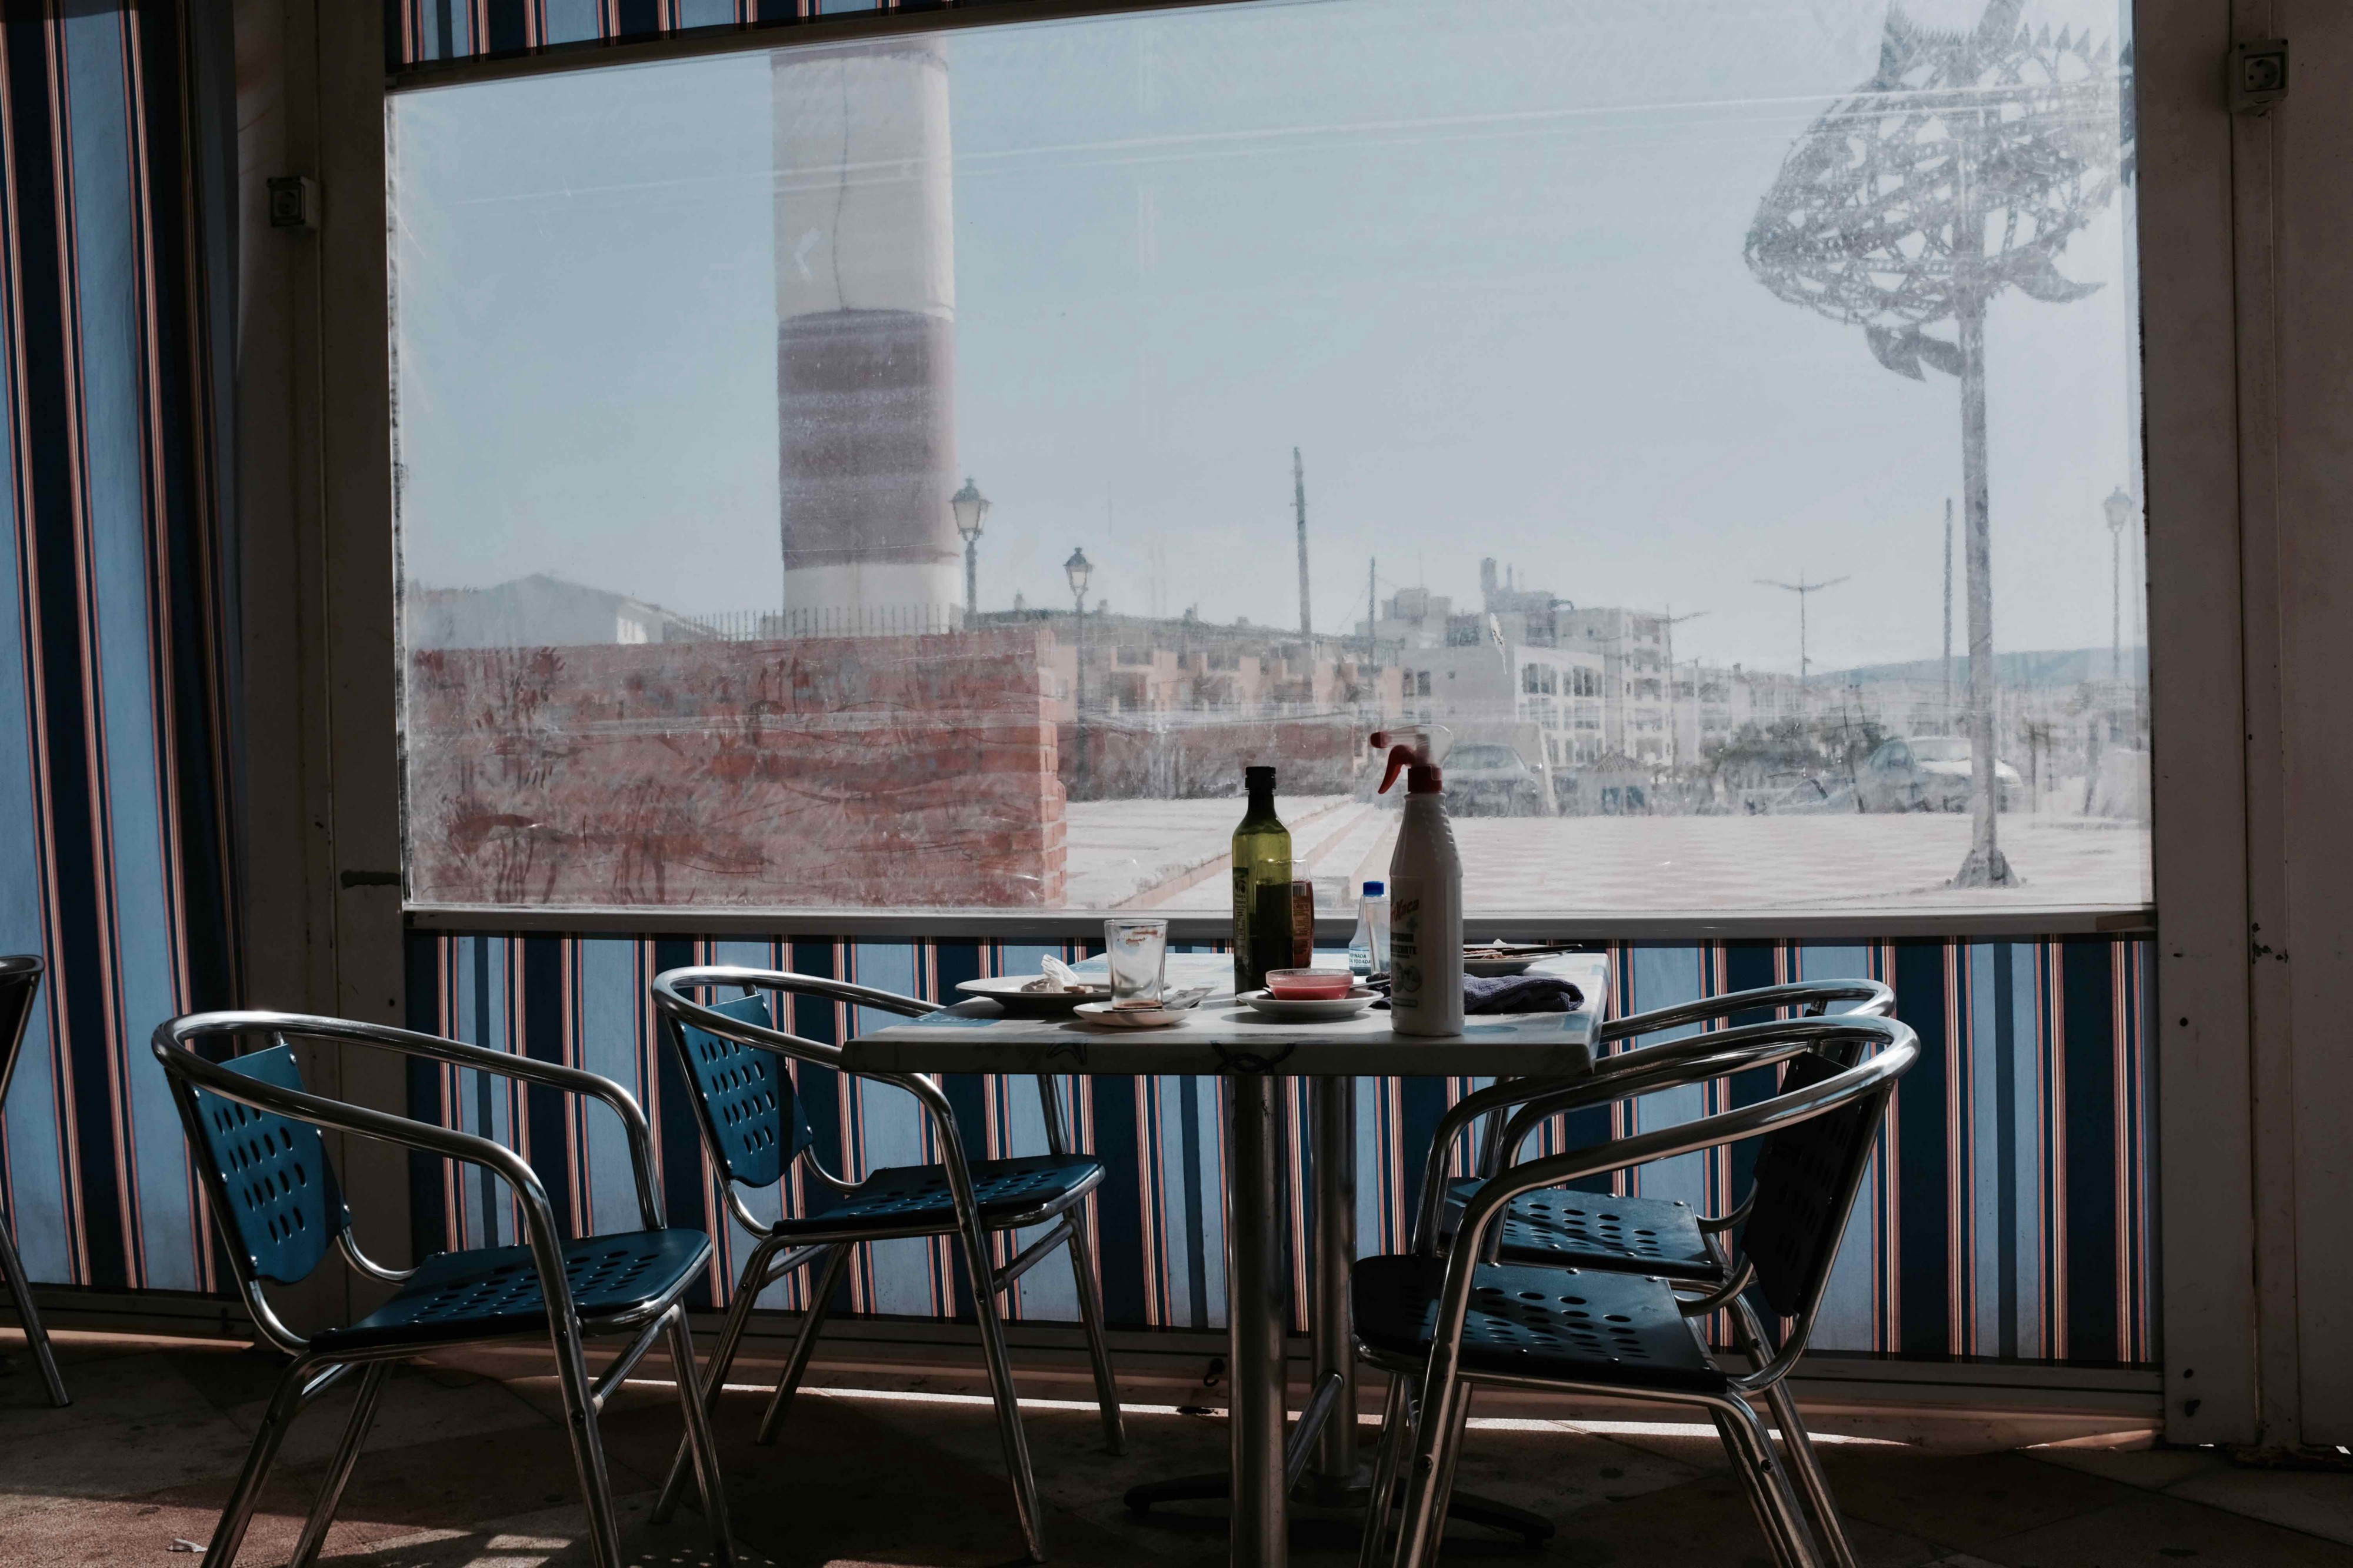 An image of a table and chairs in a cafe with the remainder of breakfast things. There is a plastic canopy around it, striped with a window and a view of a seaside front and a metal sculpture of a tuna fish.